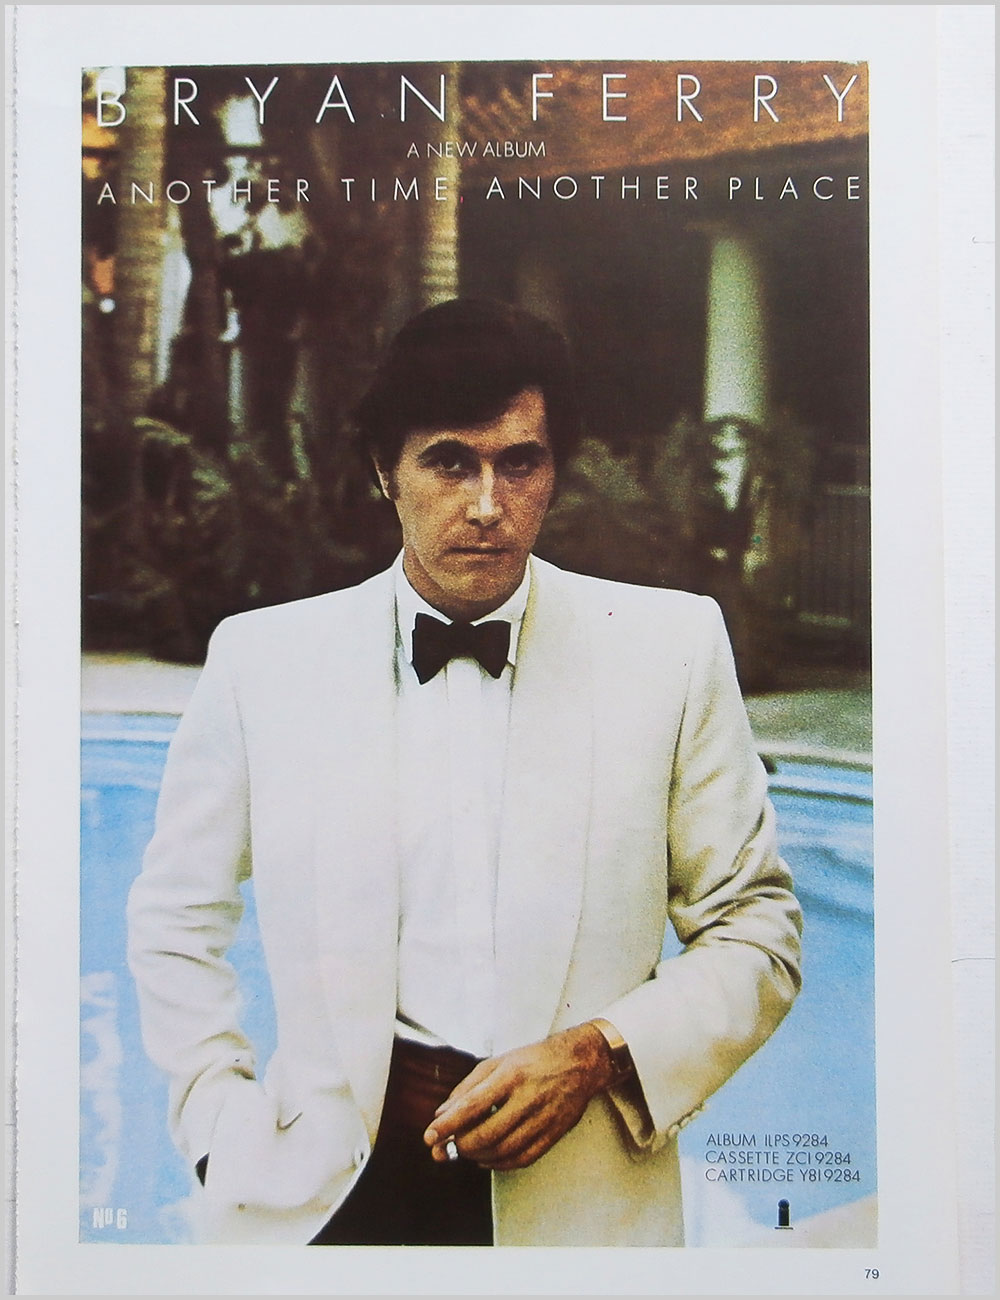 Bryan Ferry and Important - Rock Poster: Bryan Ferry: Another Time, Another Place b/w Important (PB100313)